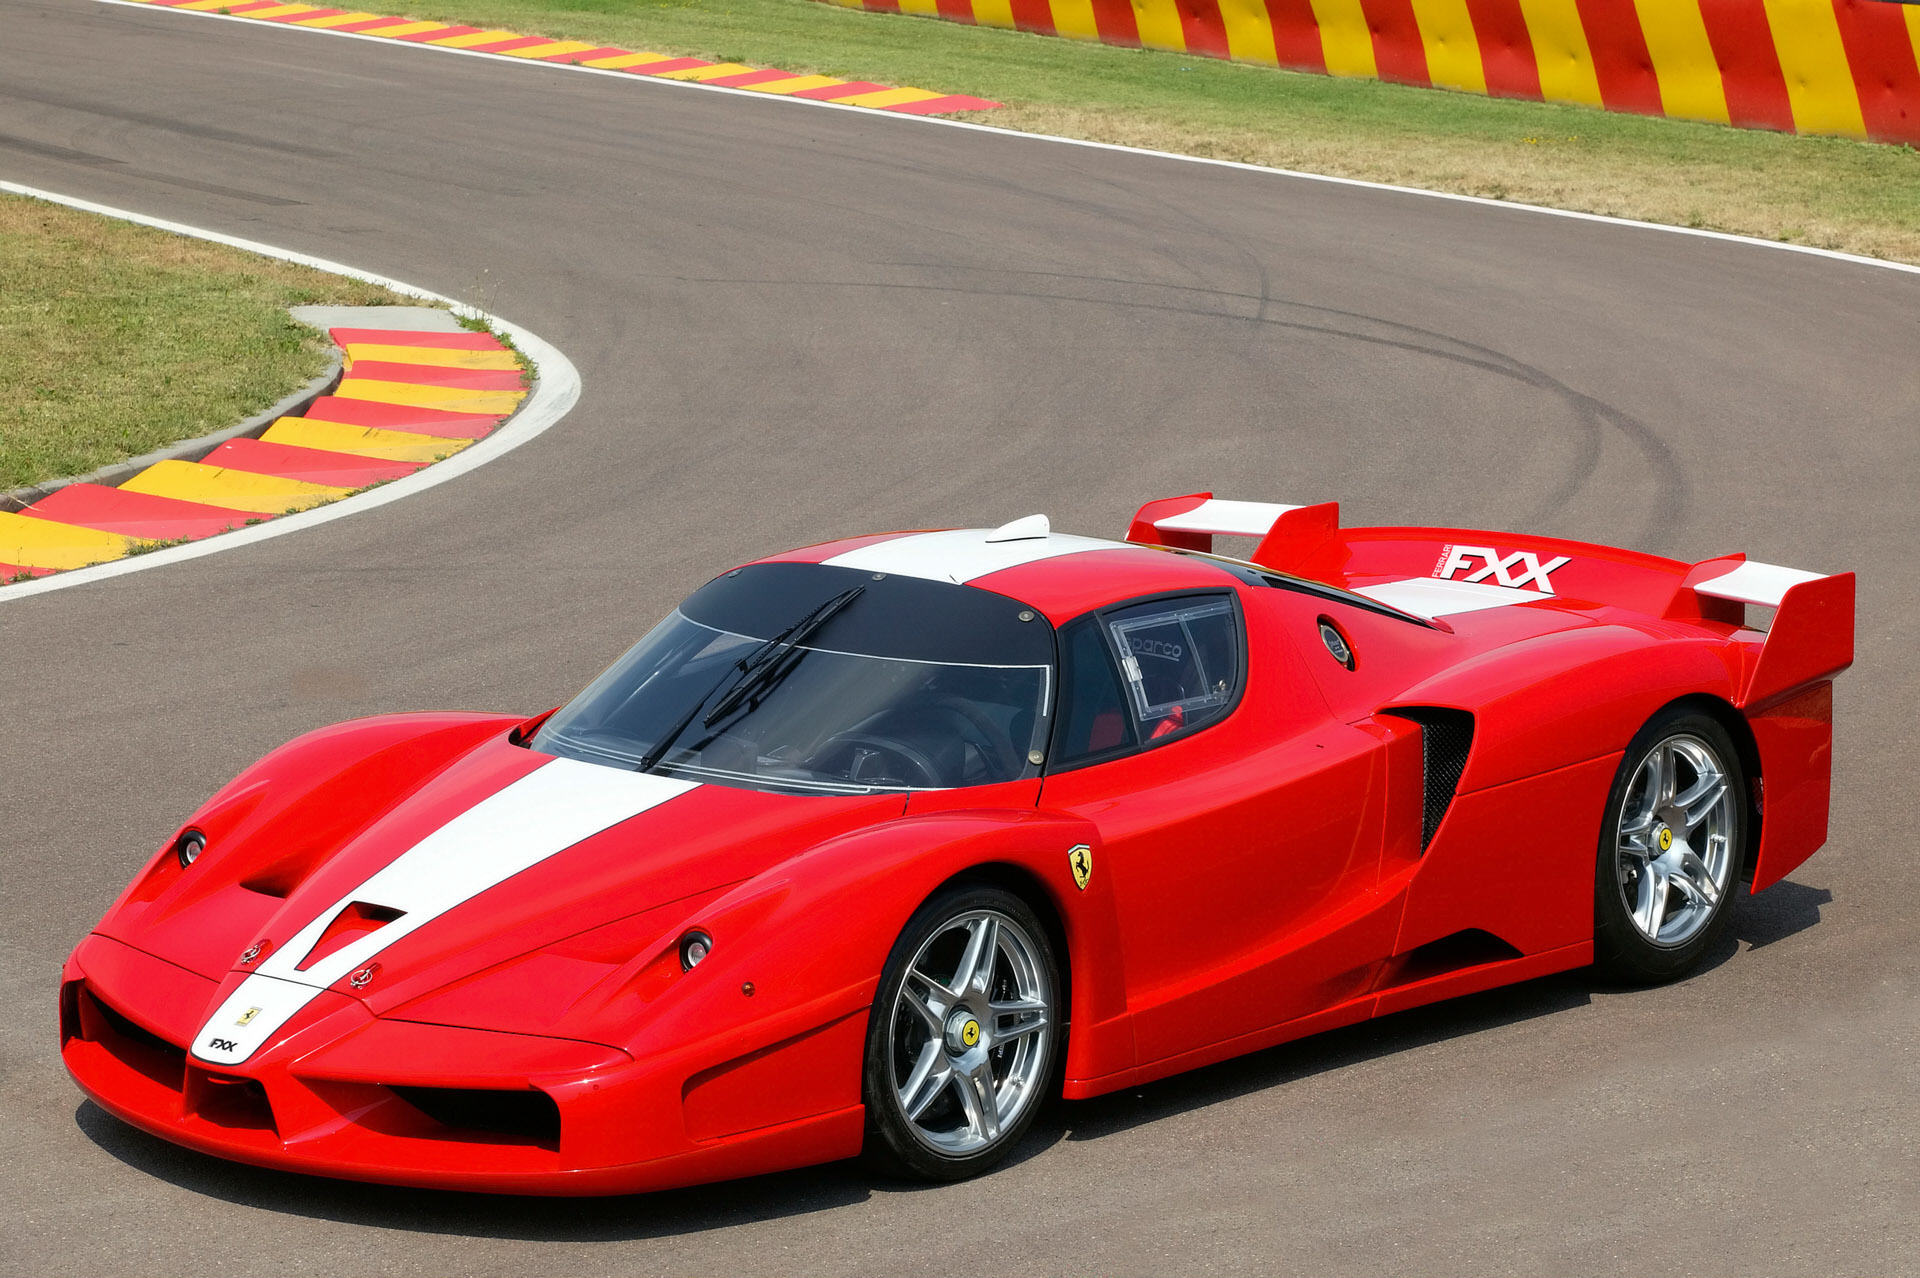 Ferrari FXX Latest News, Reviews, Specifications, Prices